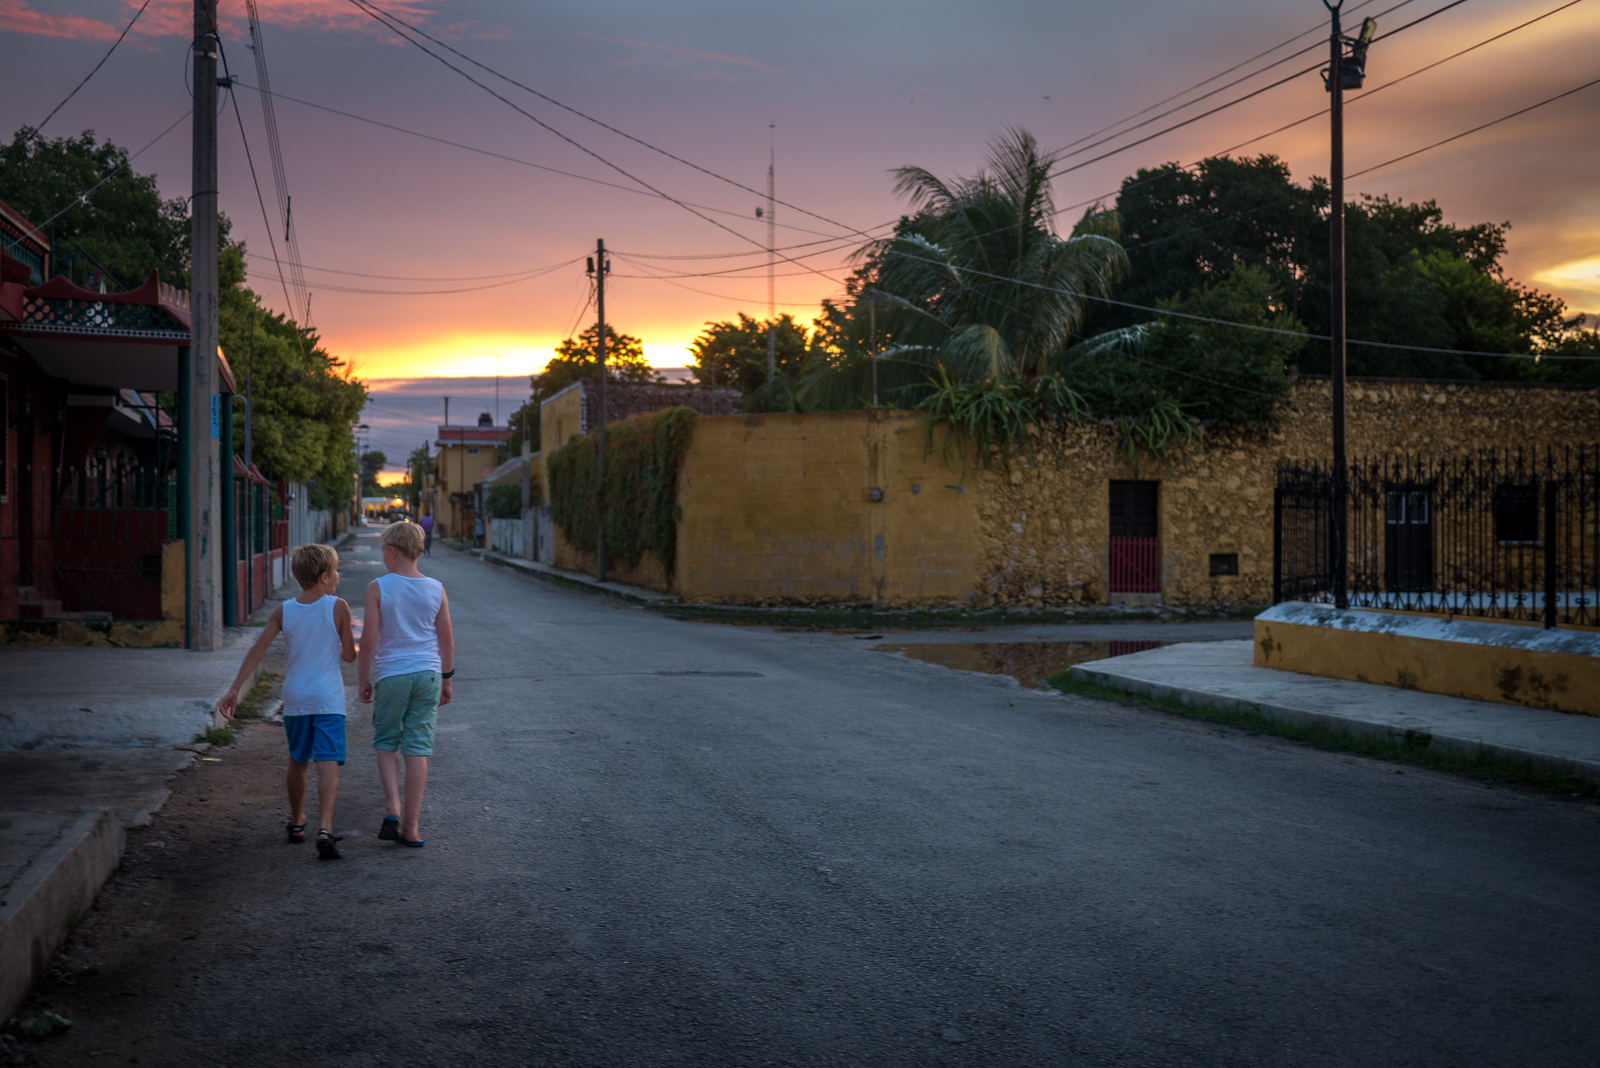 sunset in Izamal